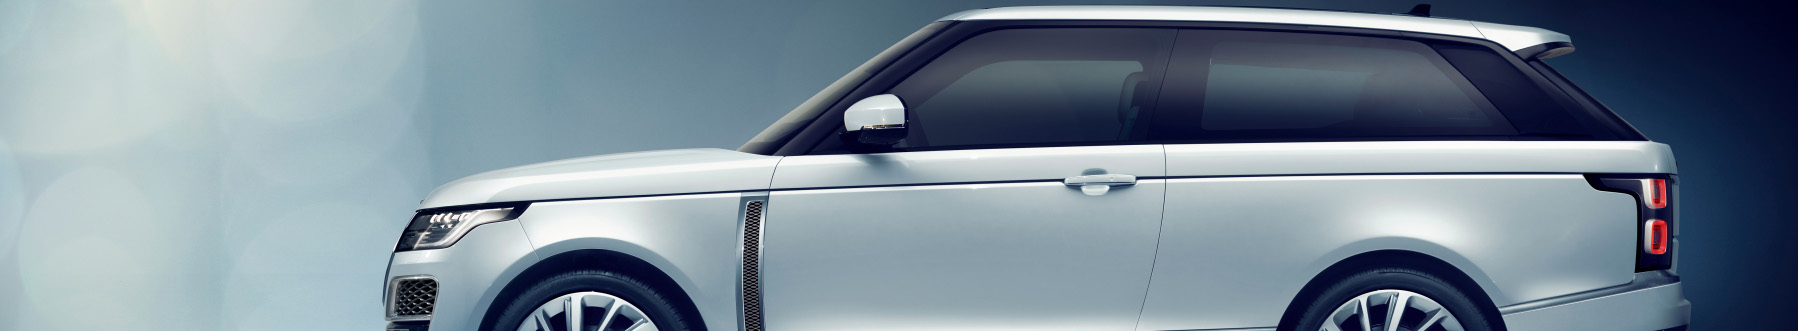 EXCLUSIVE RANGE ROVER SV COUPE BANNER